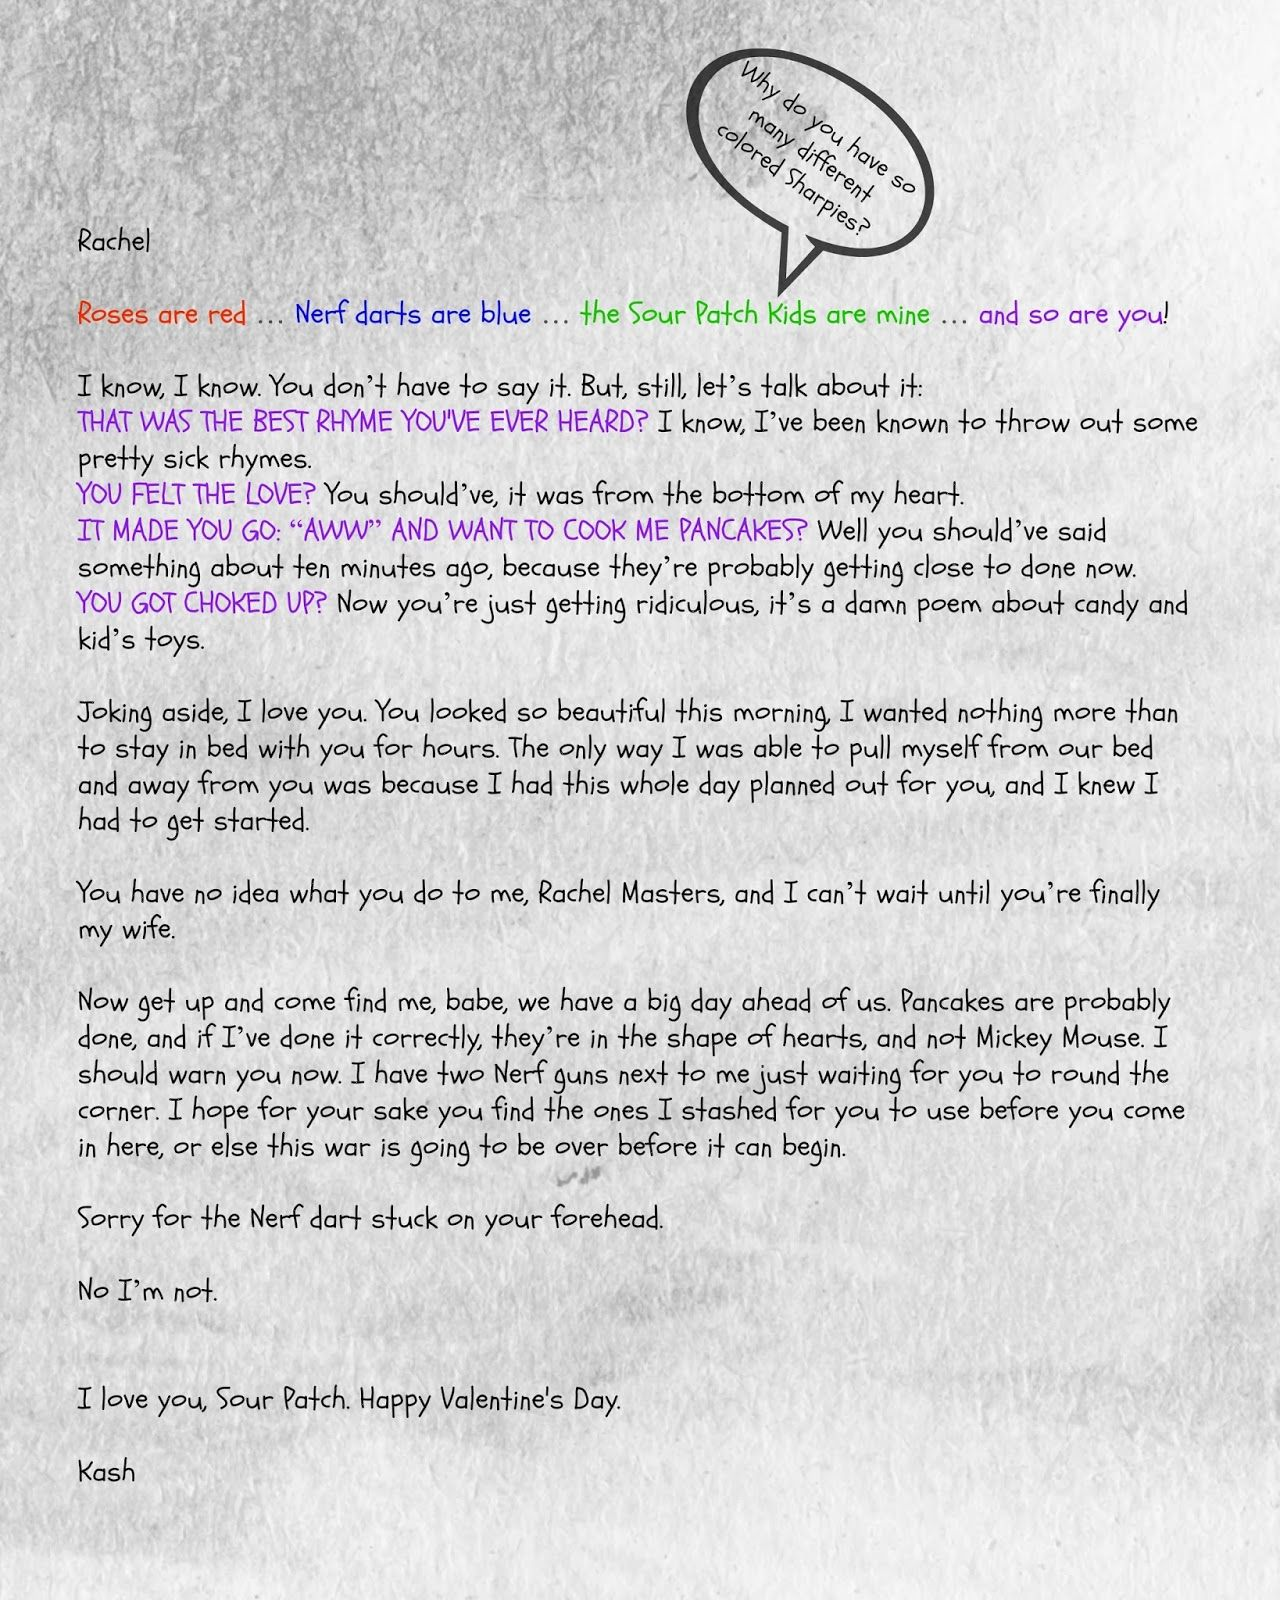 Valentines Day letter from Kash to Rachel characters from Molly